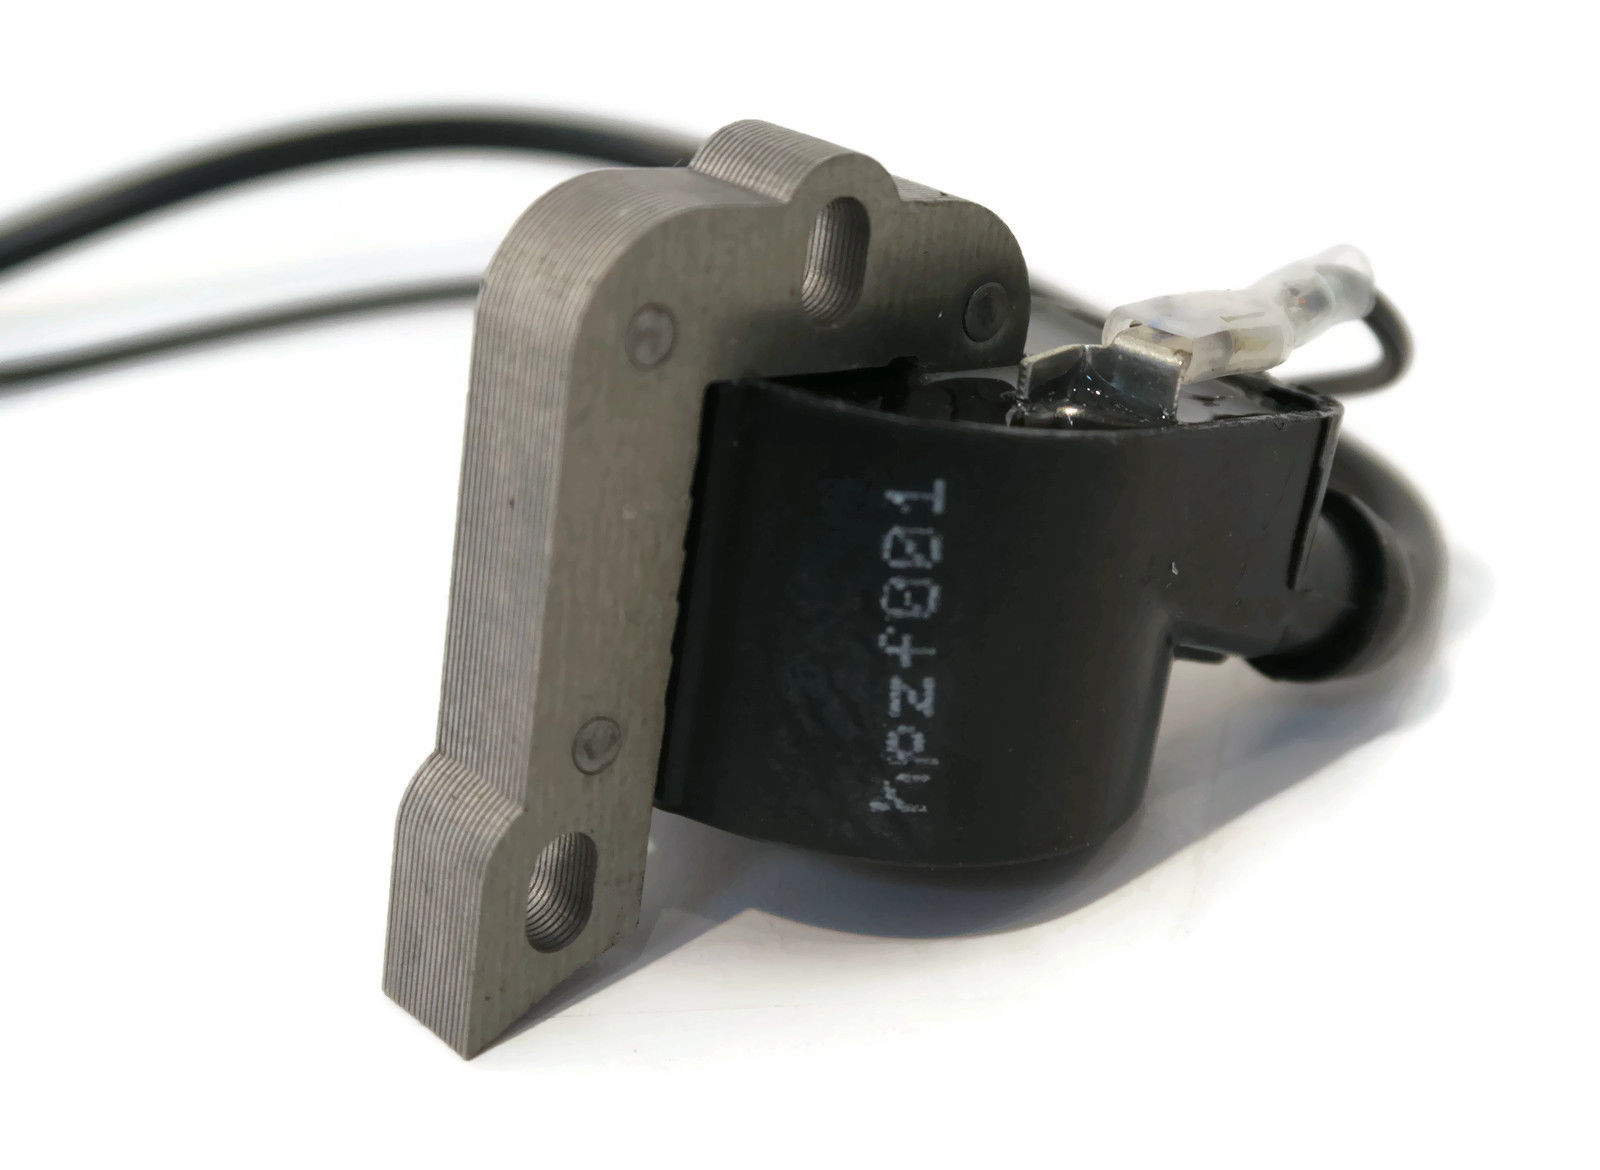 IGNITION COIL Module Magneto fits Jonsered 2001-2008 GR50 EPA RS44 EPA Chainsaw